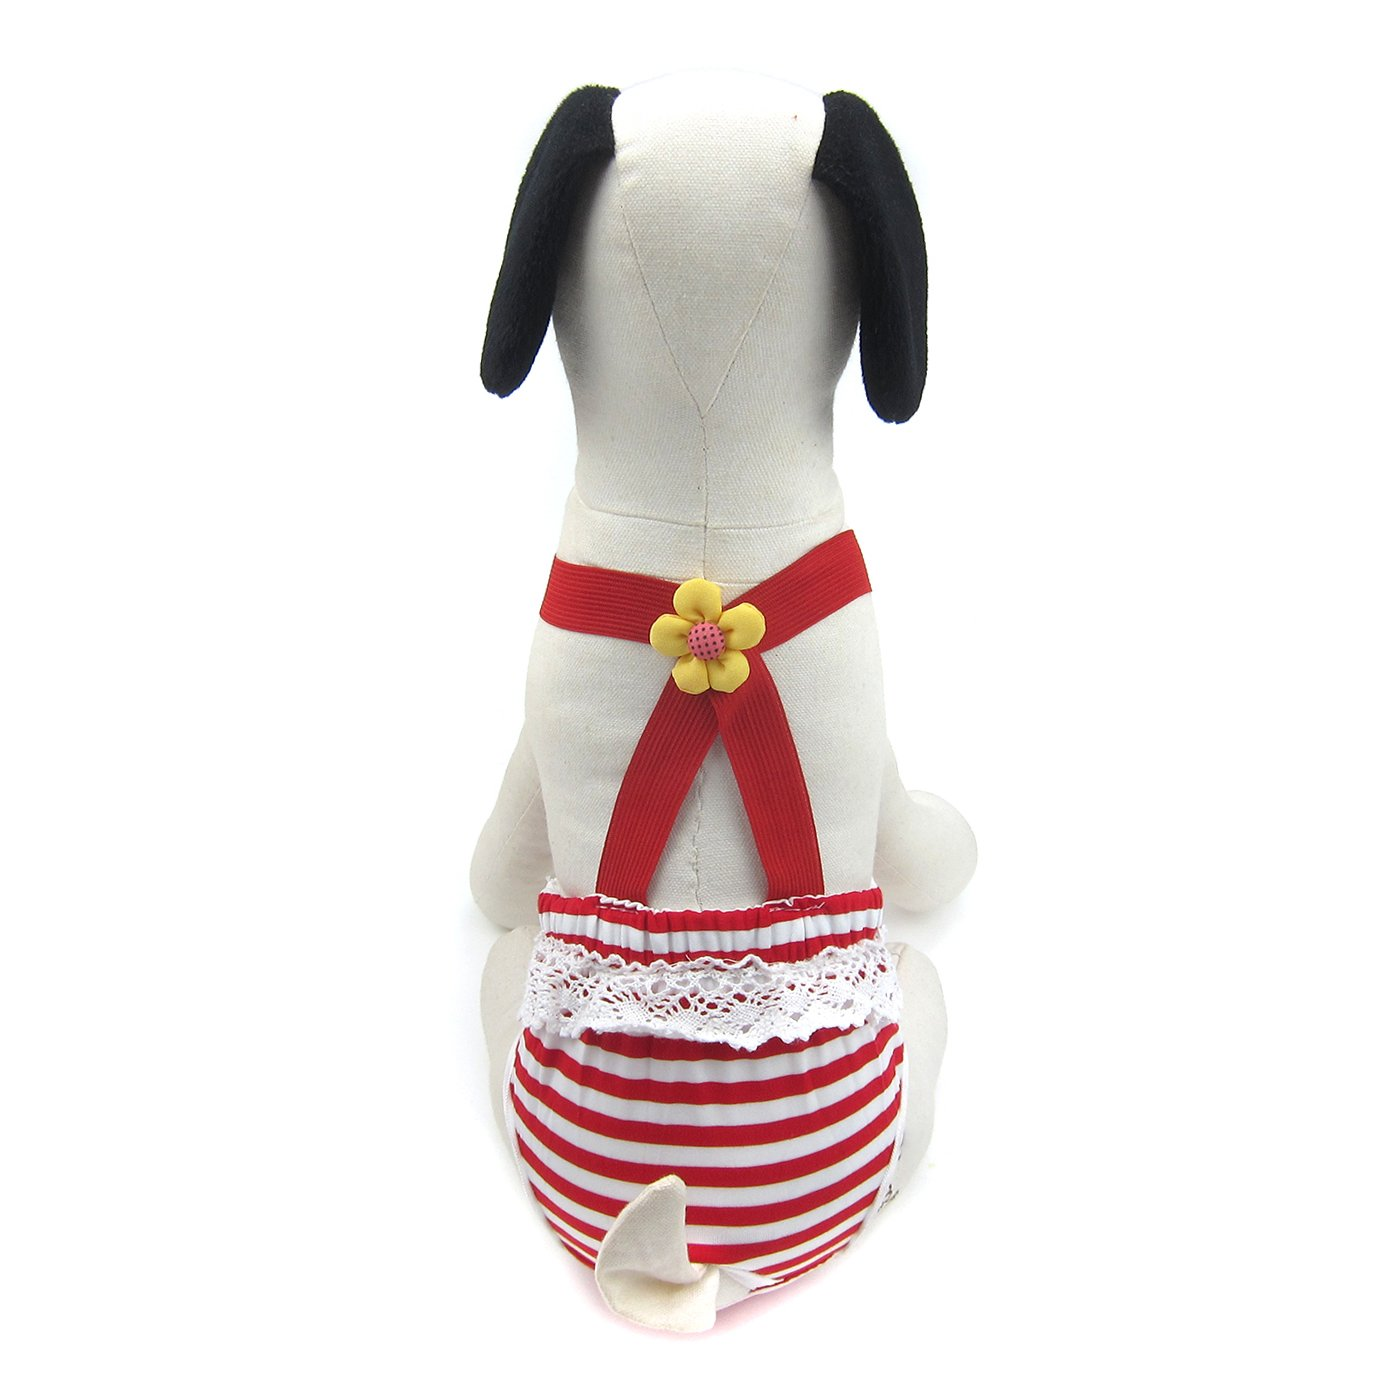 Alfie Pet by Petoga Couture - Kelly Diaper Dog Sanitary Pantie with Suspender for Girl Dogs - Color Red Stripe, Size: XXL